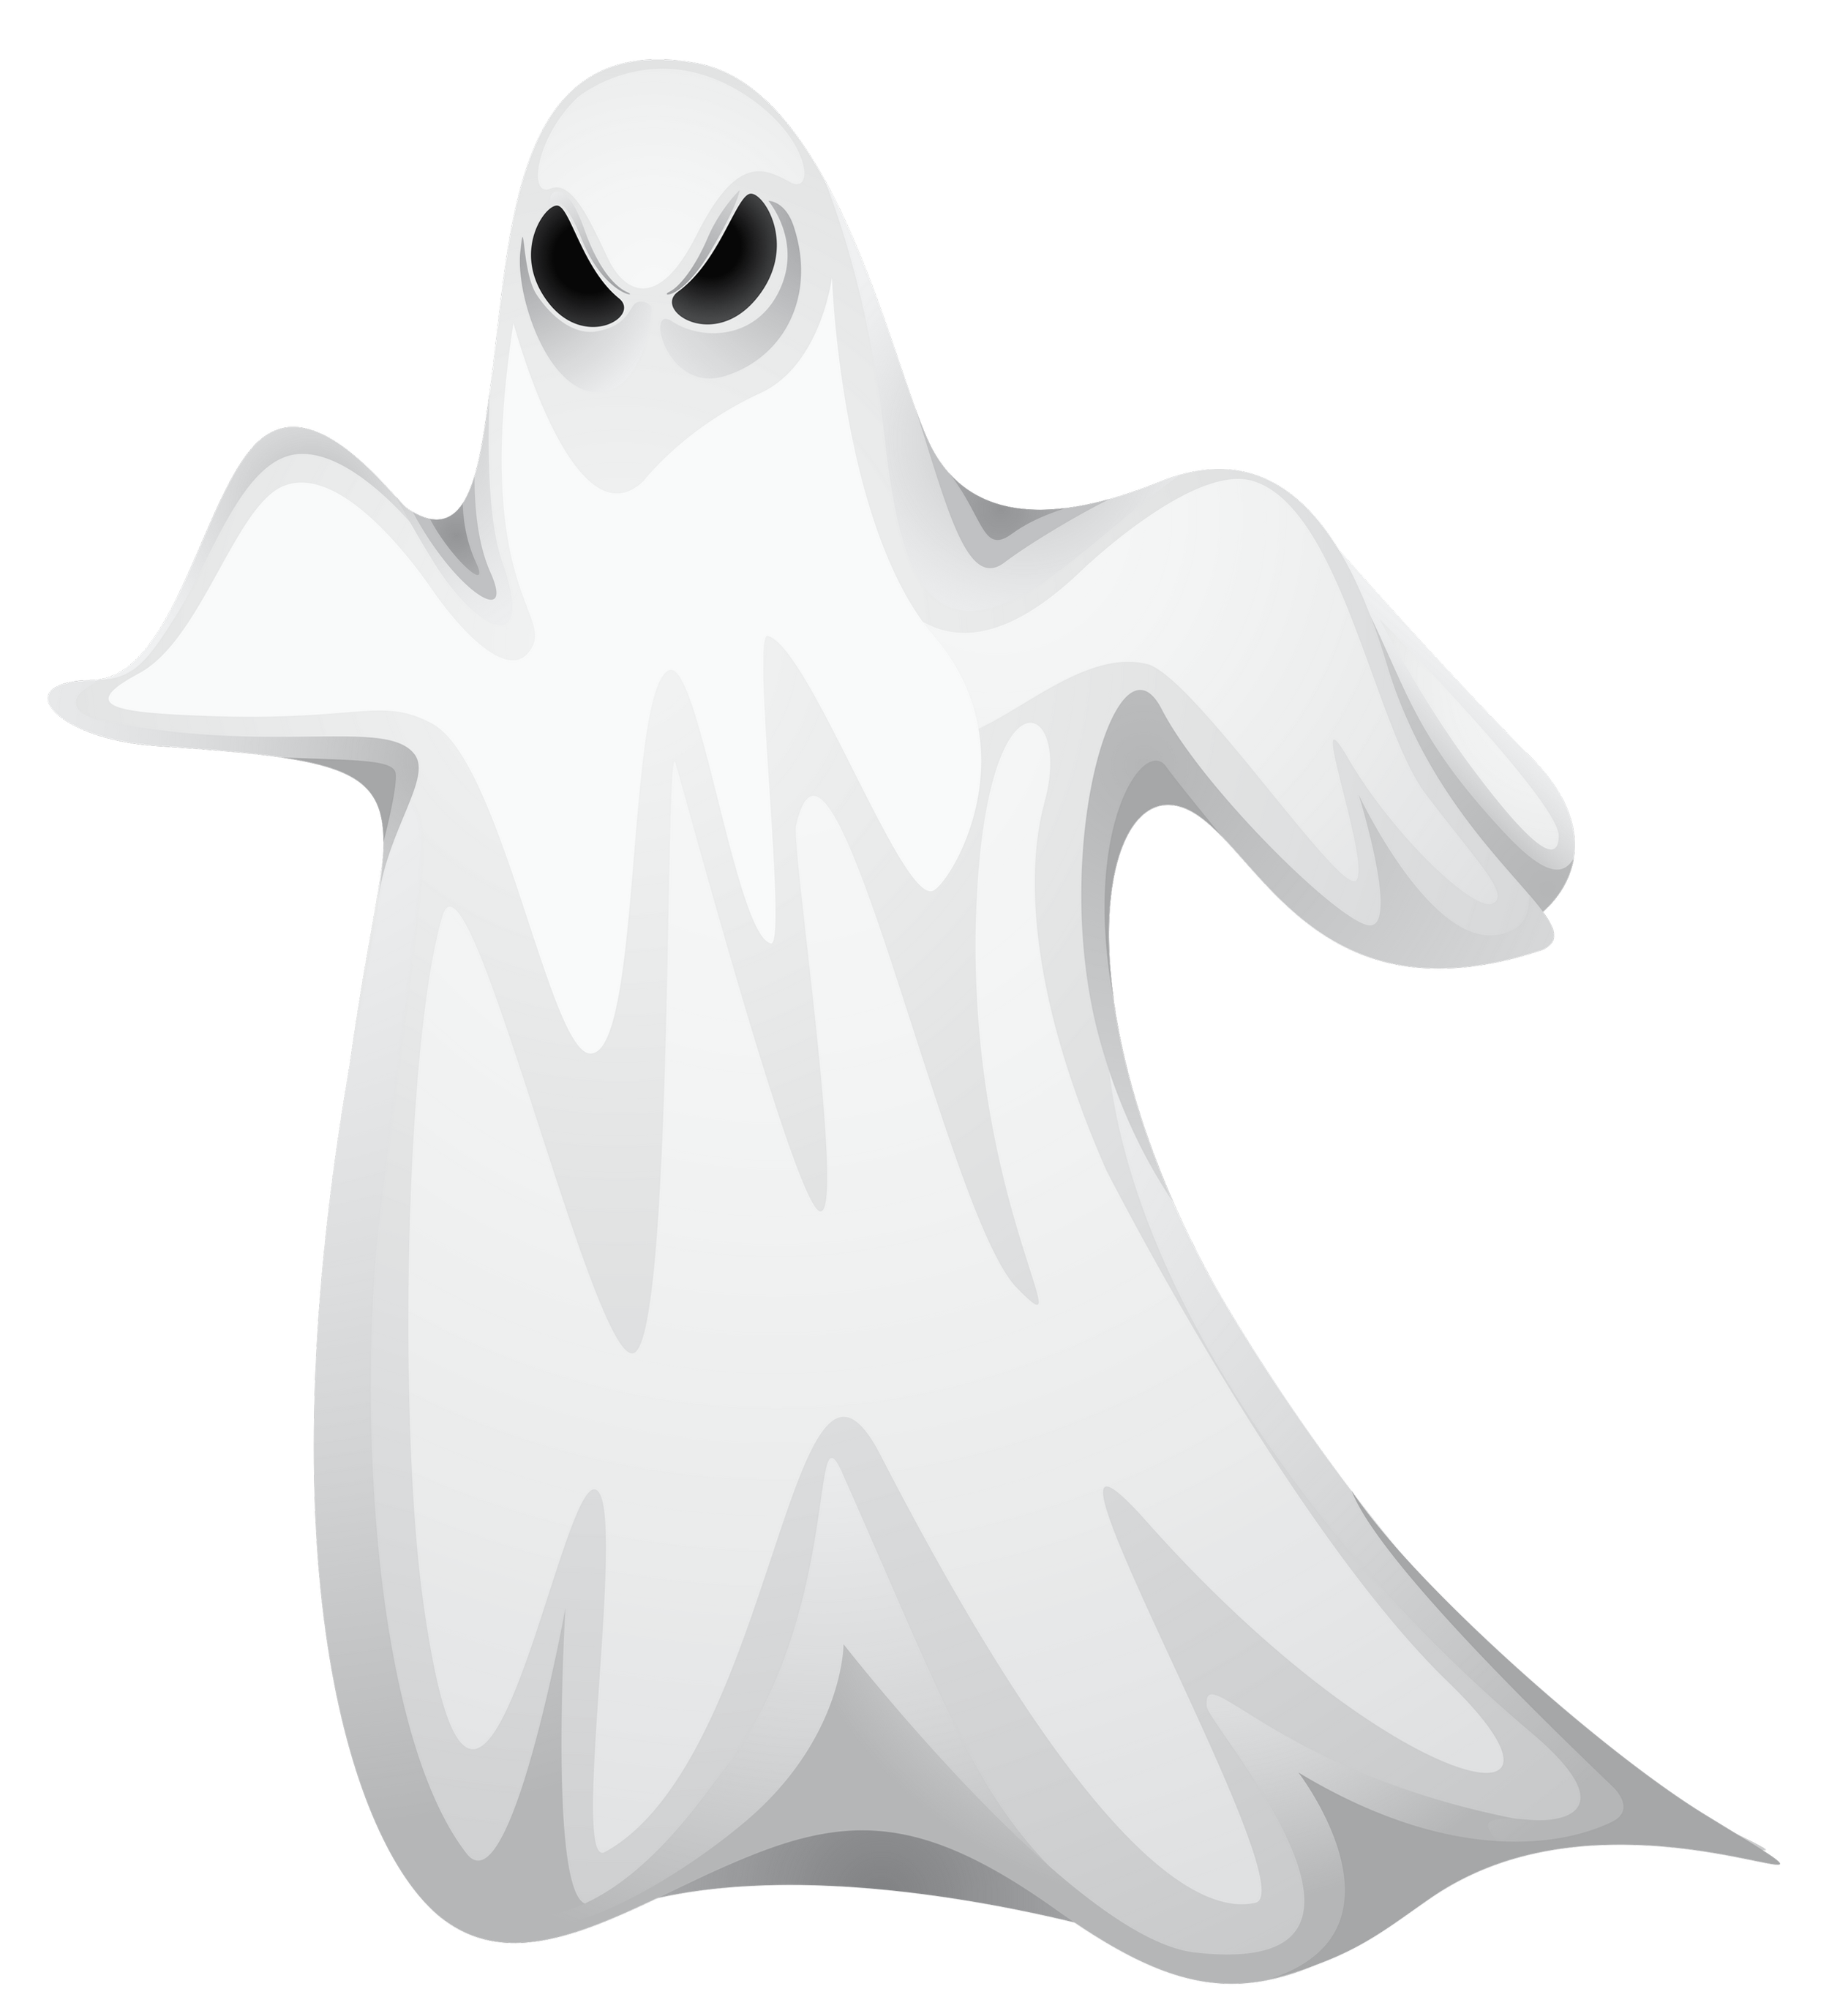 ghost png transparent image pngpix #17957